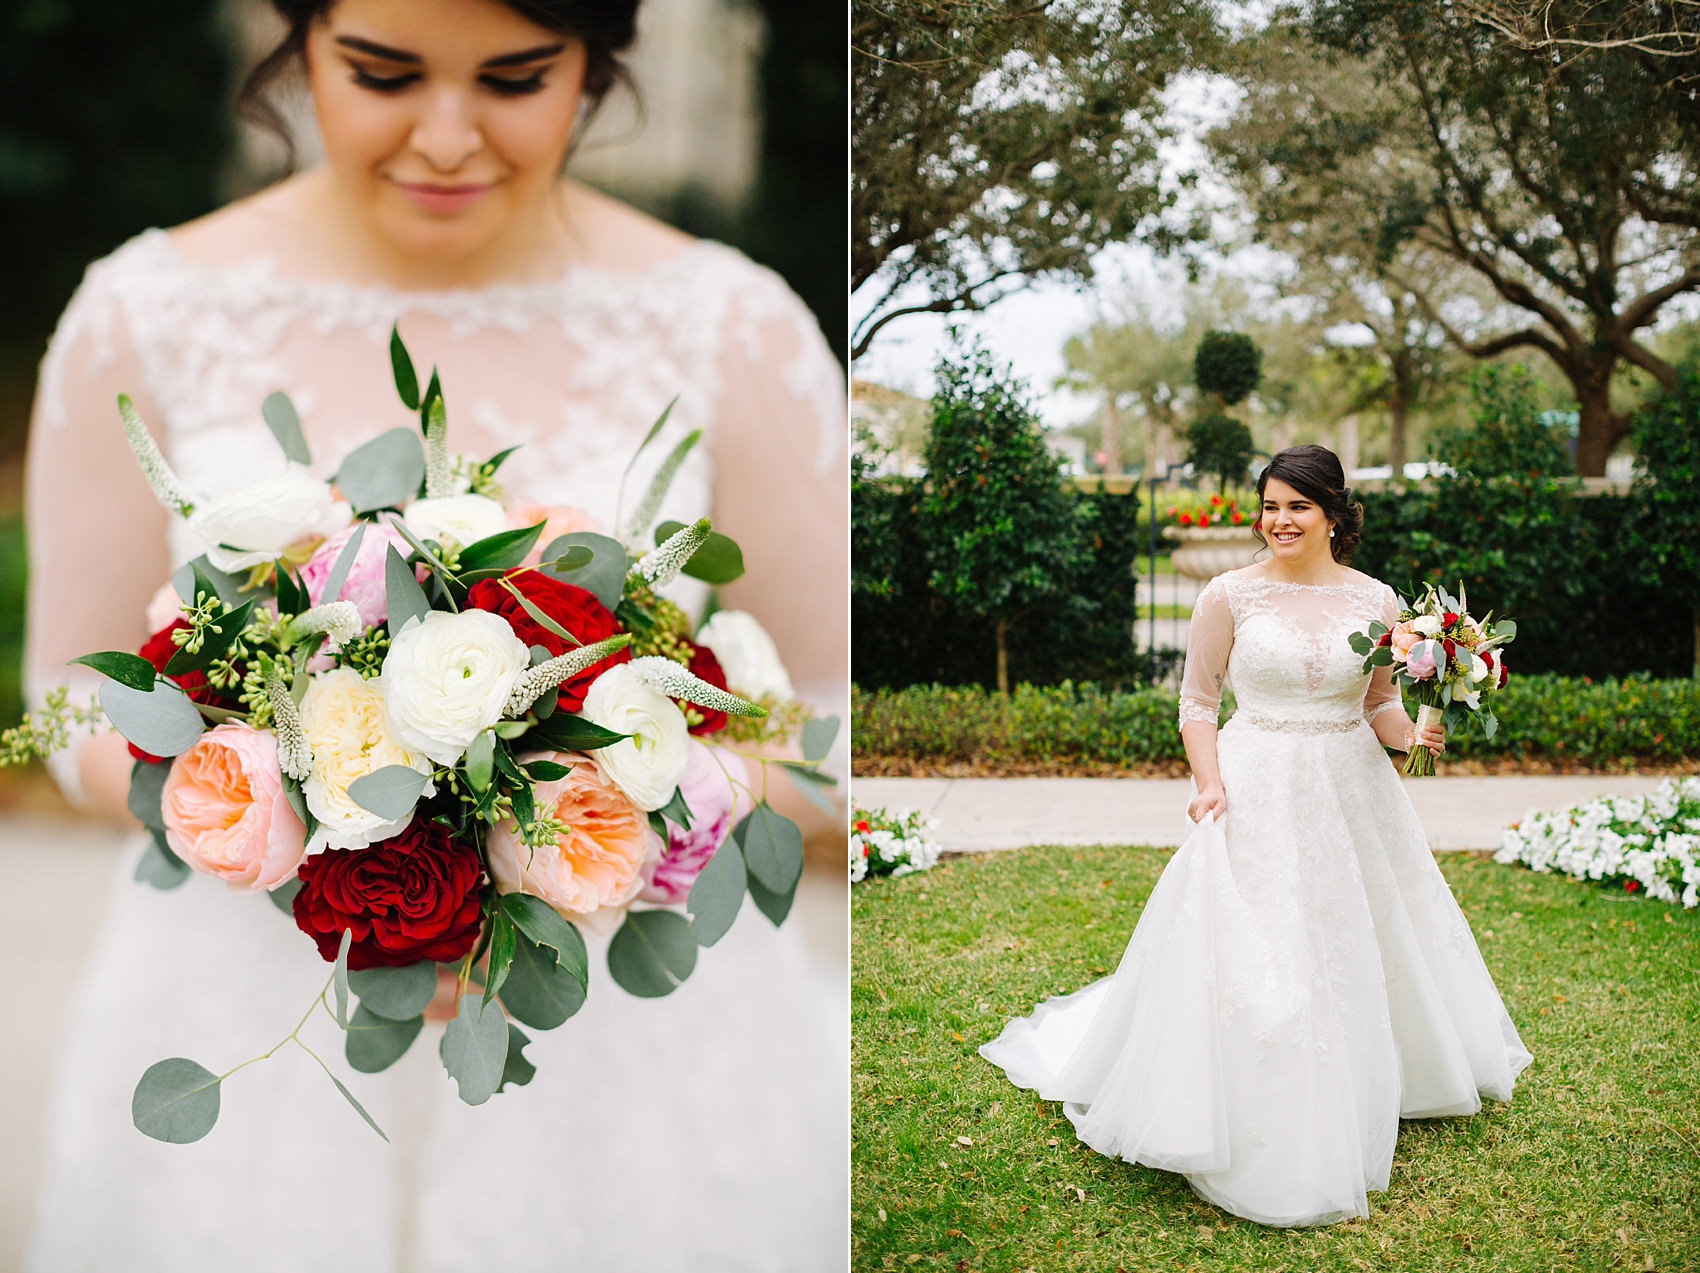 palmetto club wedding tampa wedding photographer bride portraits